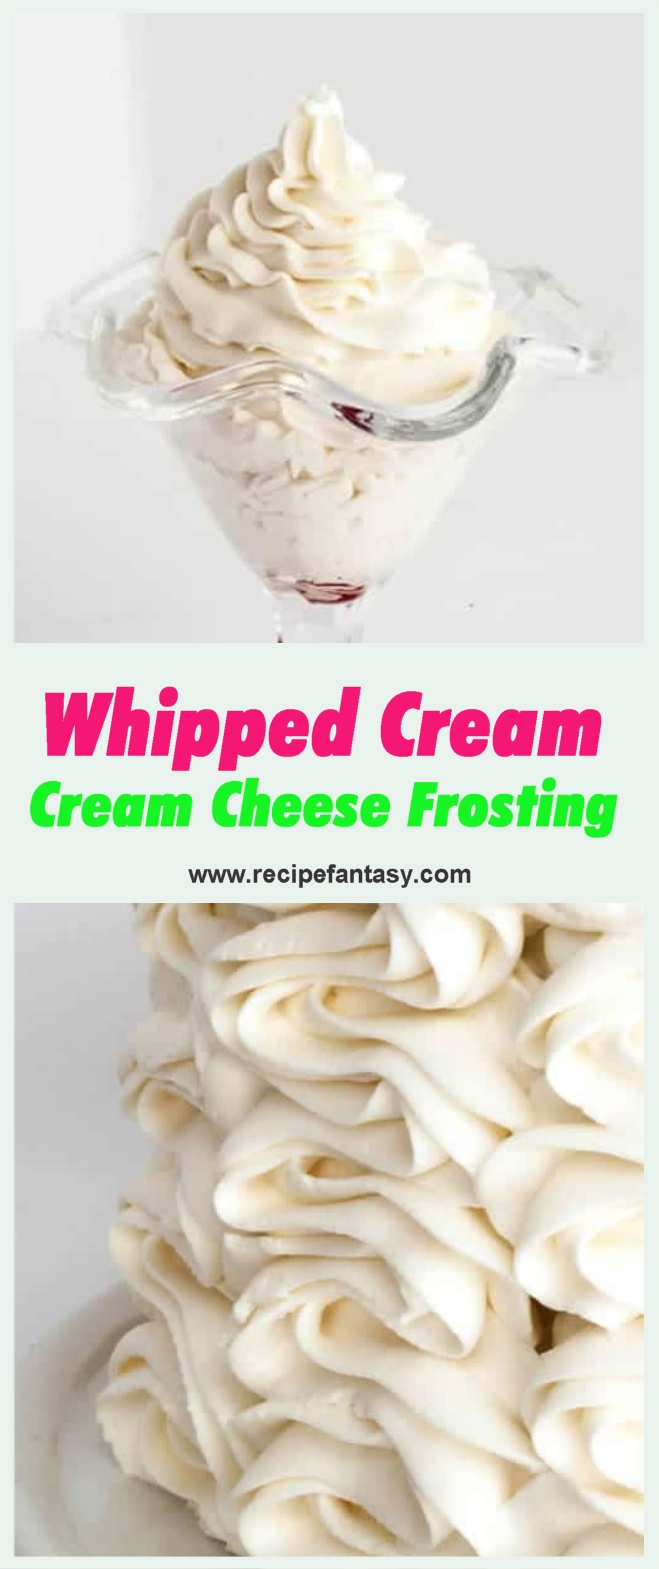 Whipped Cream Cream Cheese Frosting